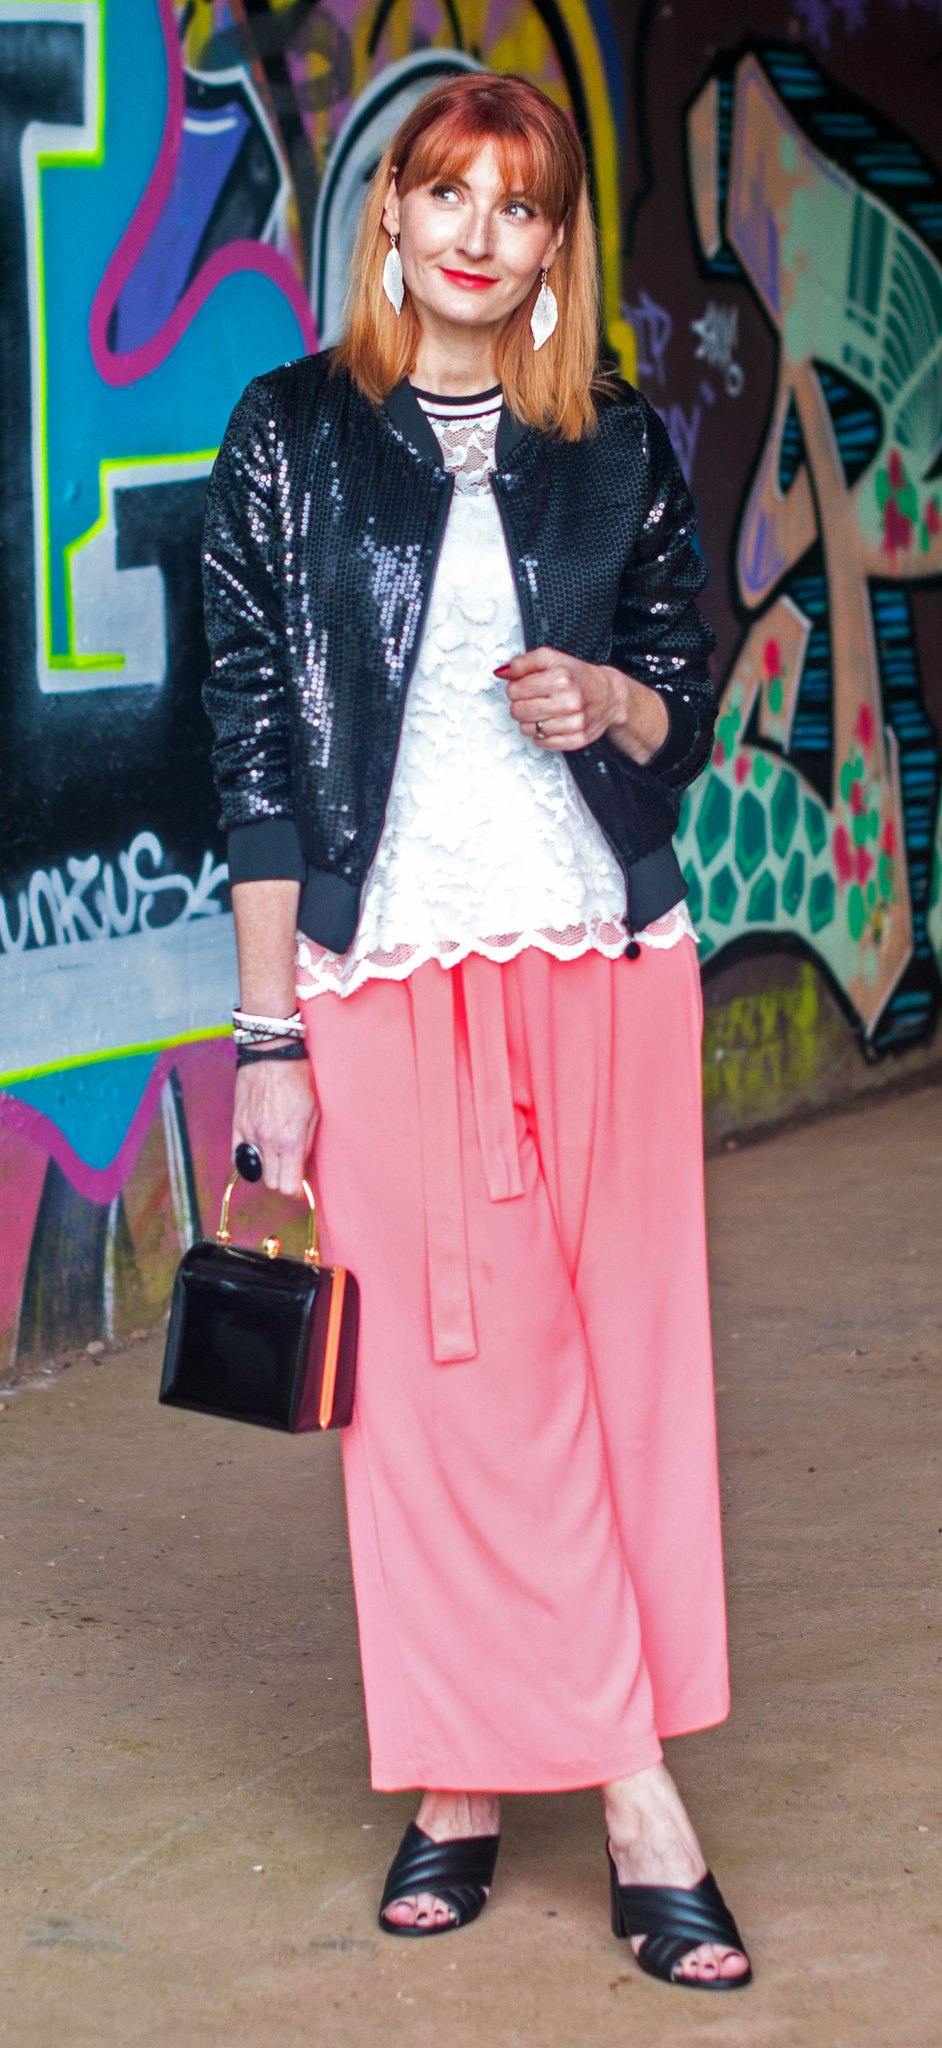 A day-to-night summer outfit: Sequin bomber jacket sporty lace top coral cropped trousers wide leg pants culottes rose gold espadrilles black crossover mules | Not Dressed As Lamb, over 40 style